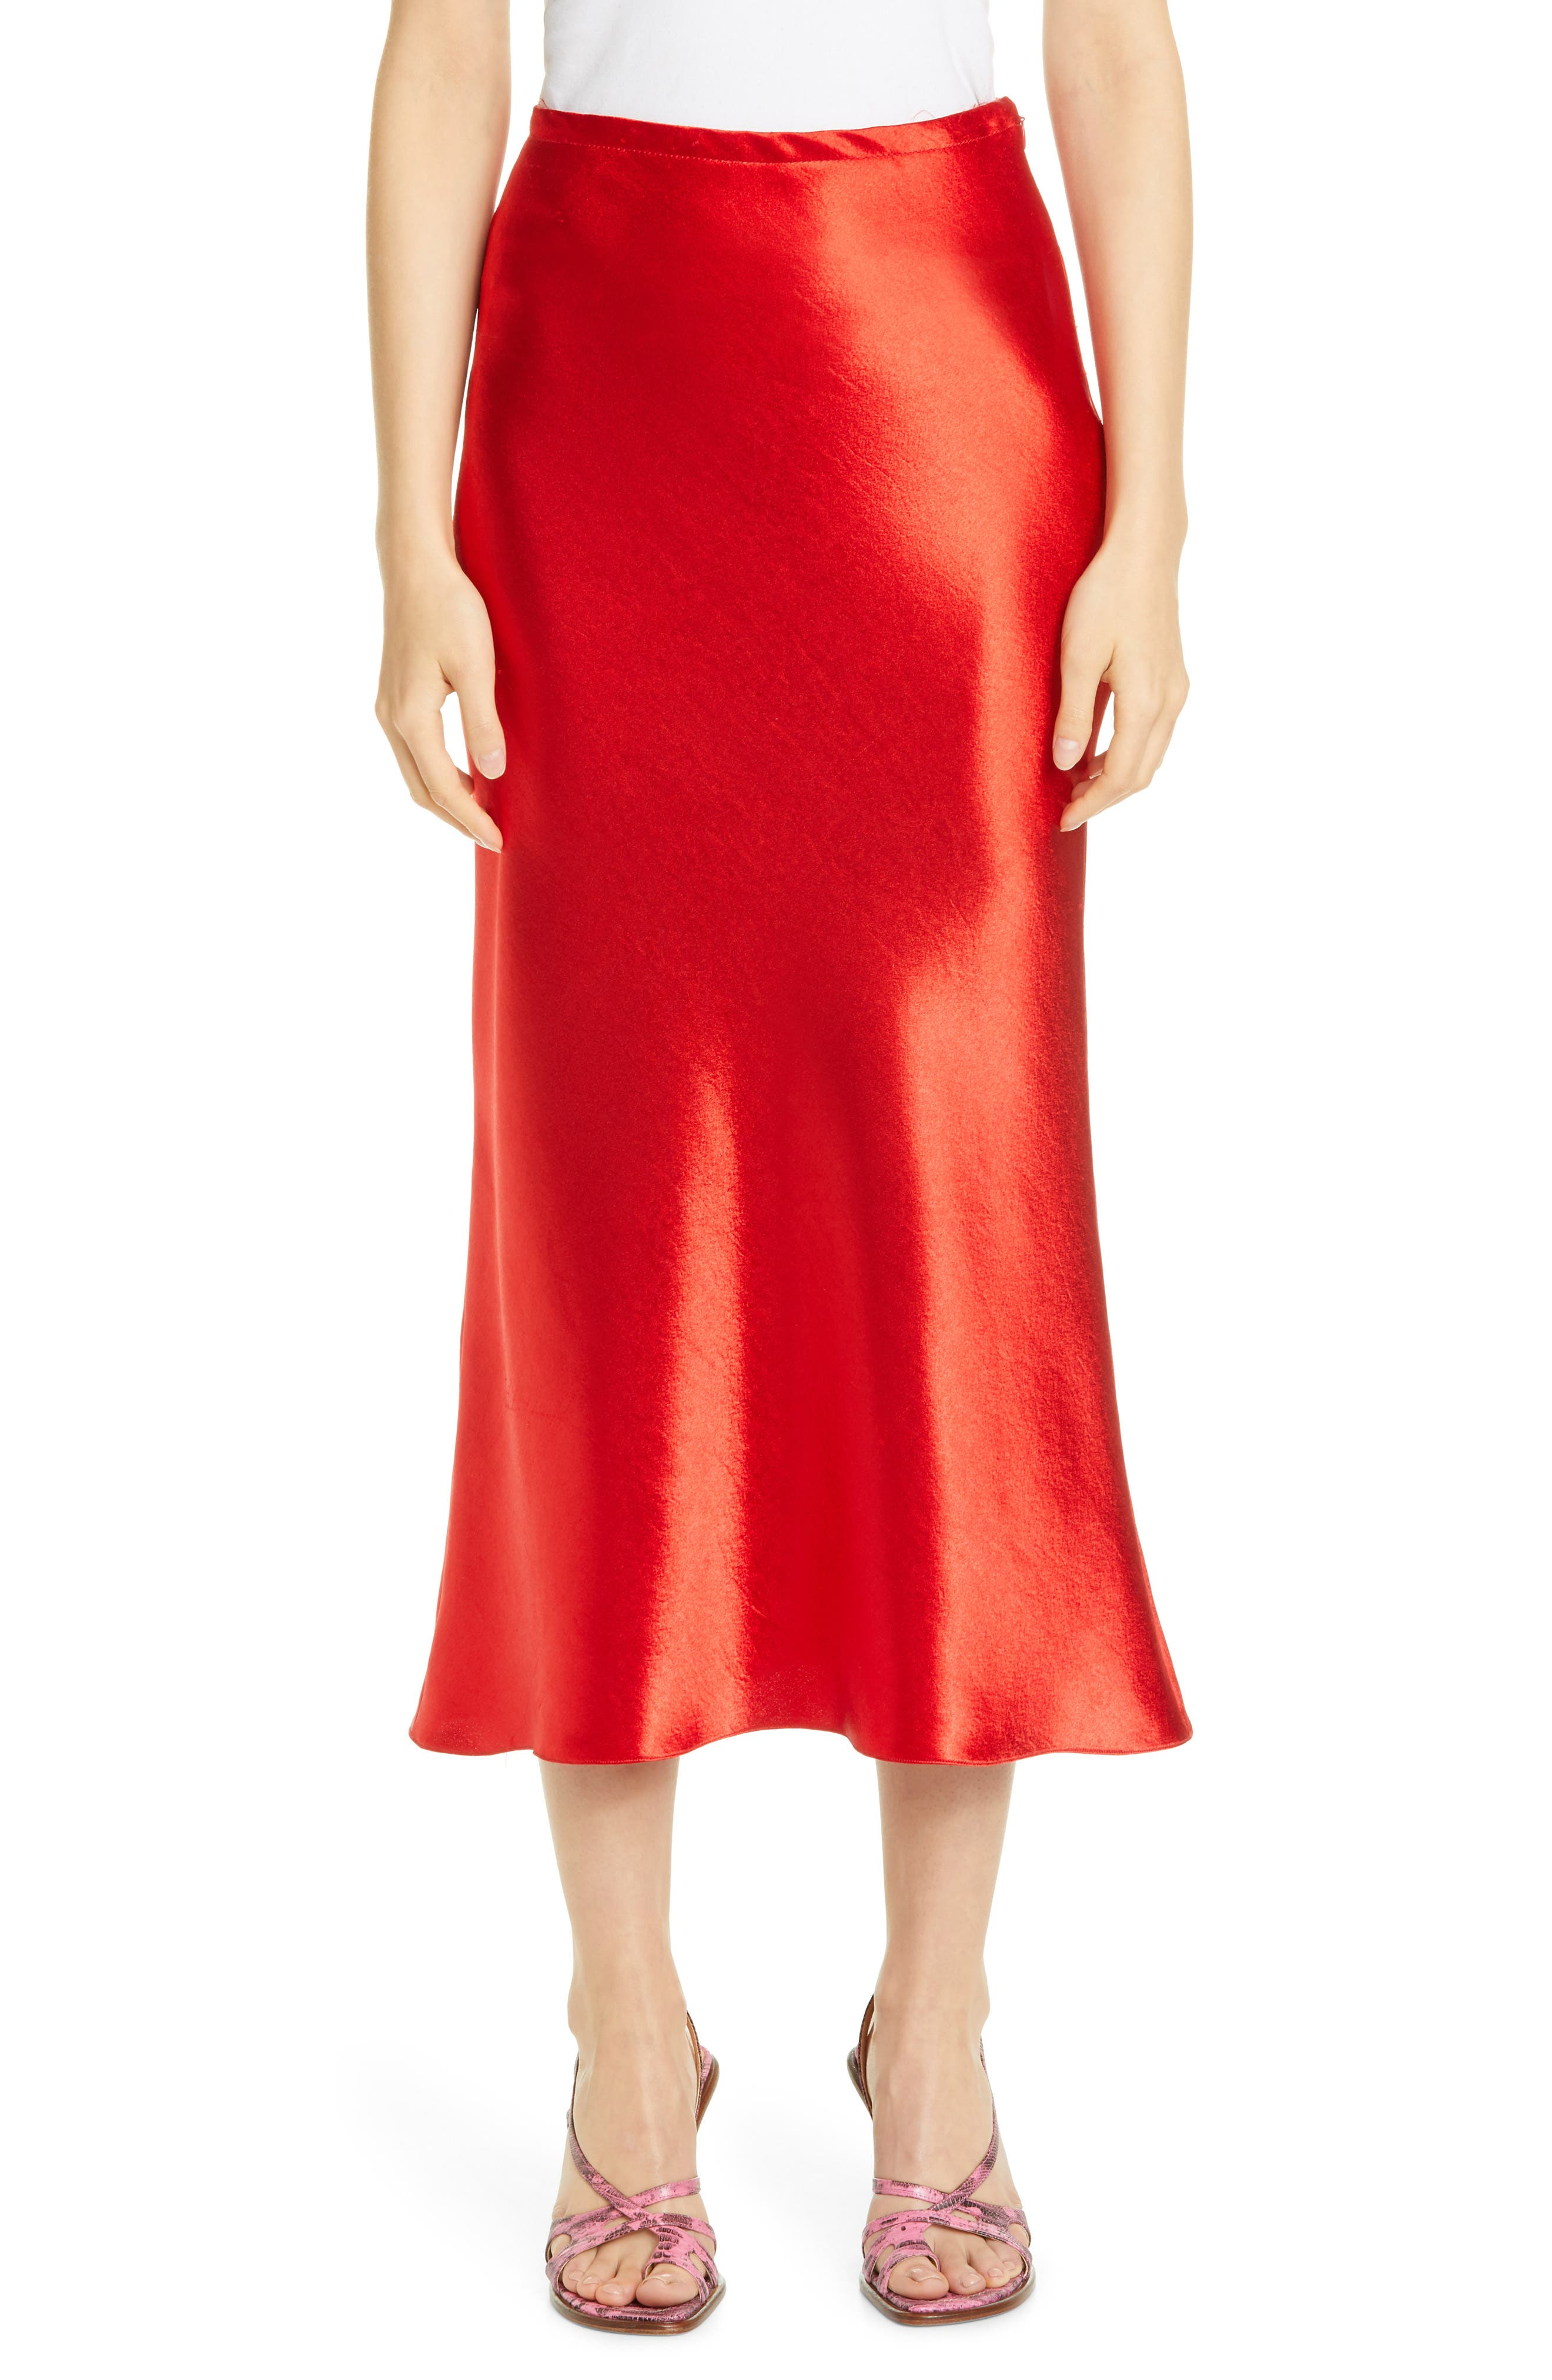 A luminous, lipstick-red satin skirt falls with plenty of liquid shimmer to a midi length and a lightly flared hem. Style Name: Sies Marjan Satin Midi Skirt. Style Number: 6010844. Available in stores.